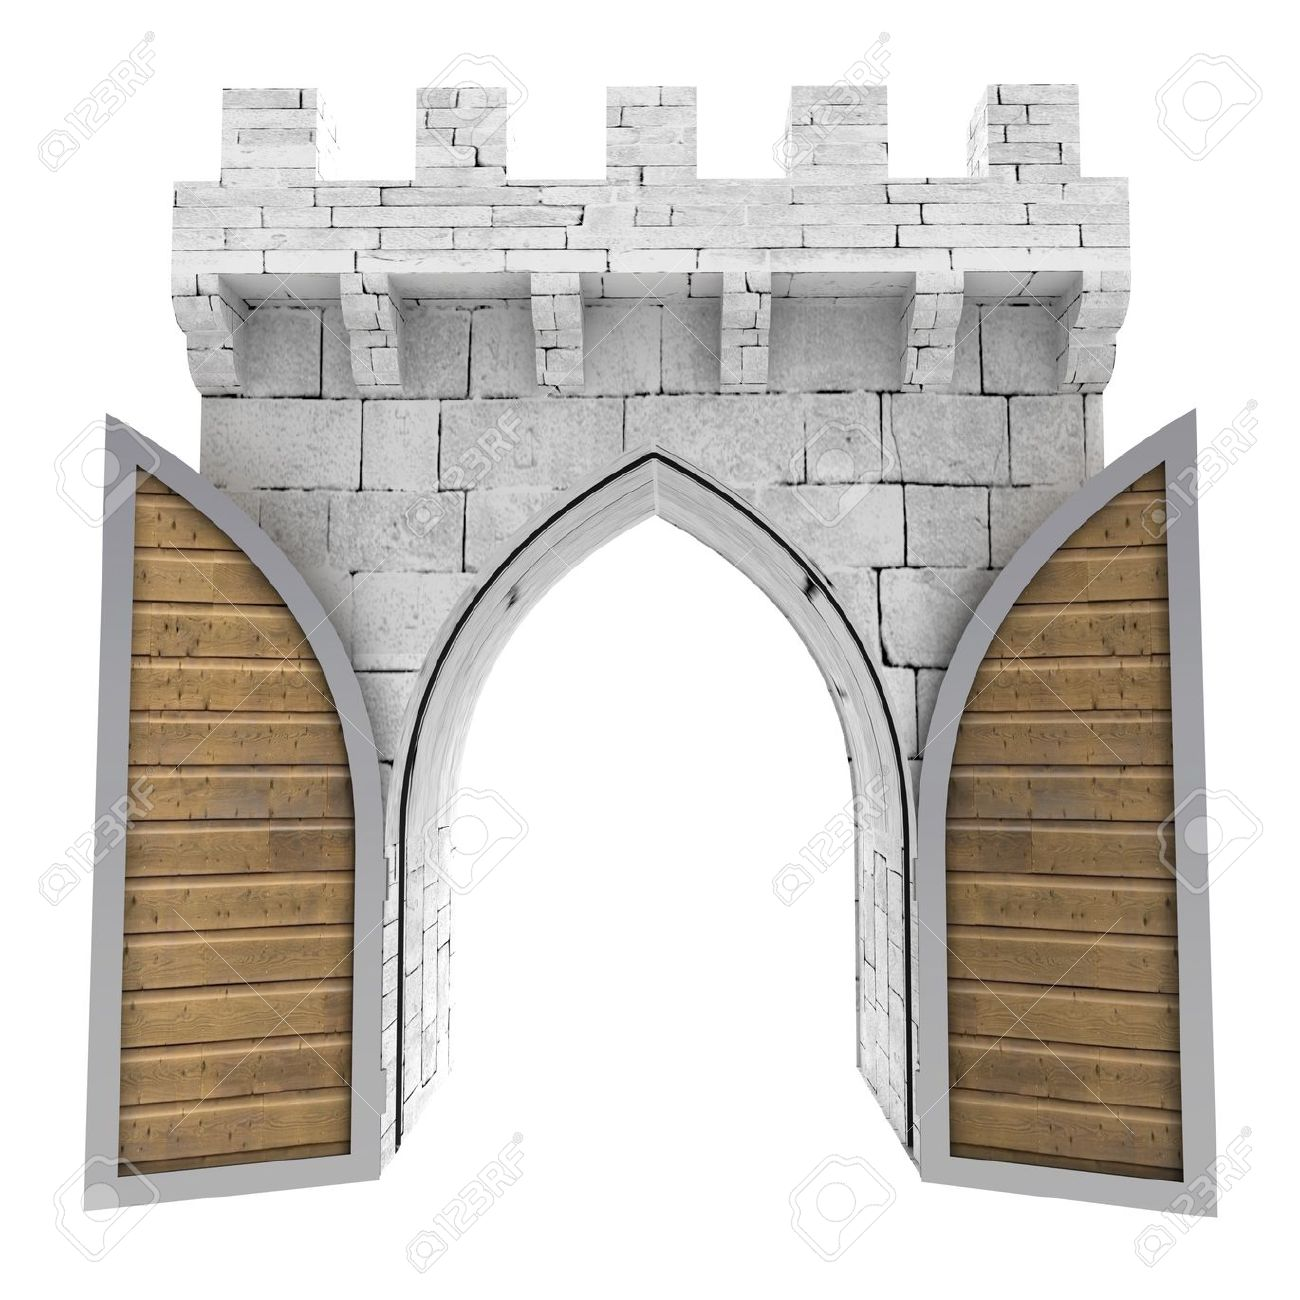 Castle gate clipart - Clipground